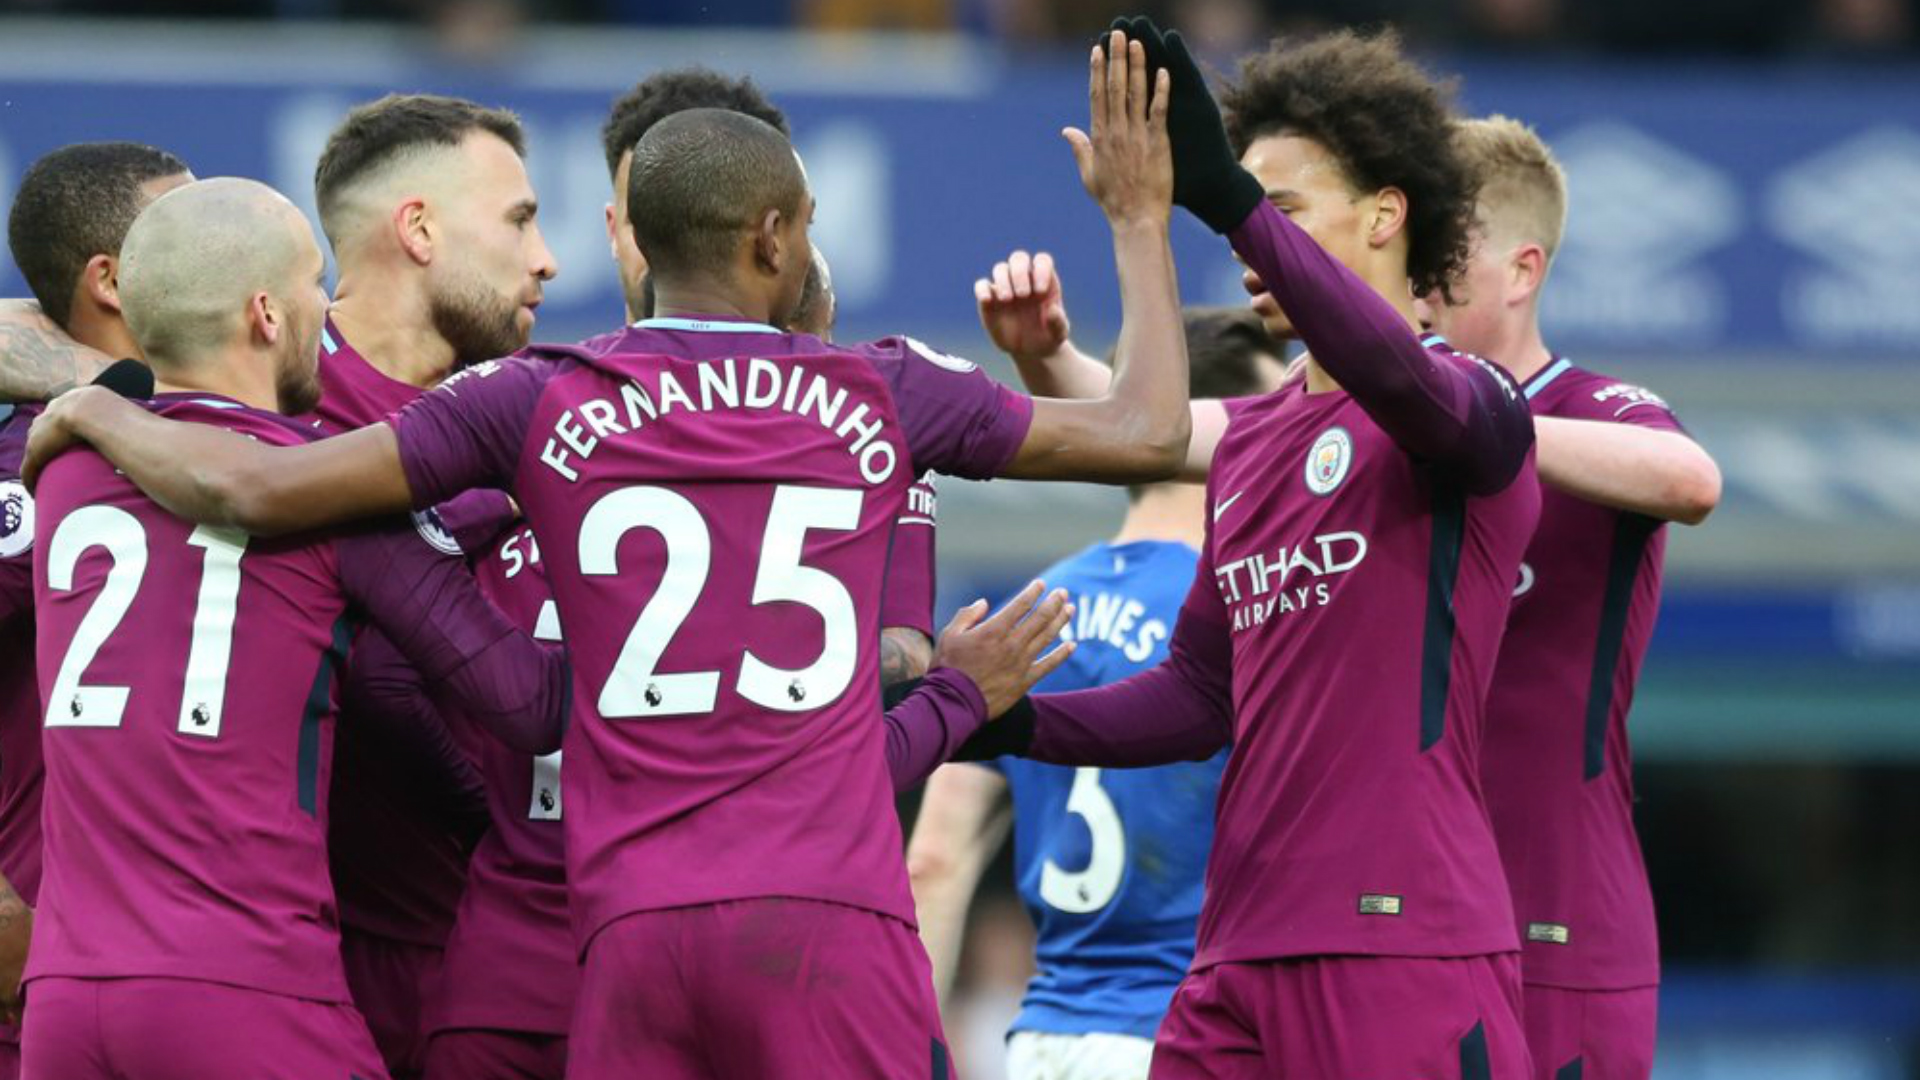 A first-half blitz laid the foundations for Manchester City's latest win as Everton were brushed aside on Saturday.